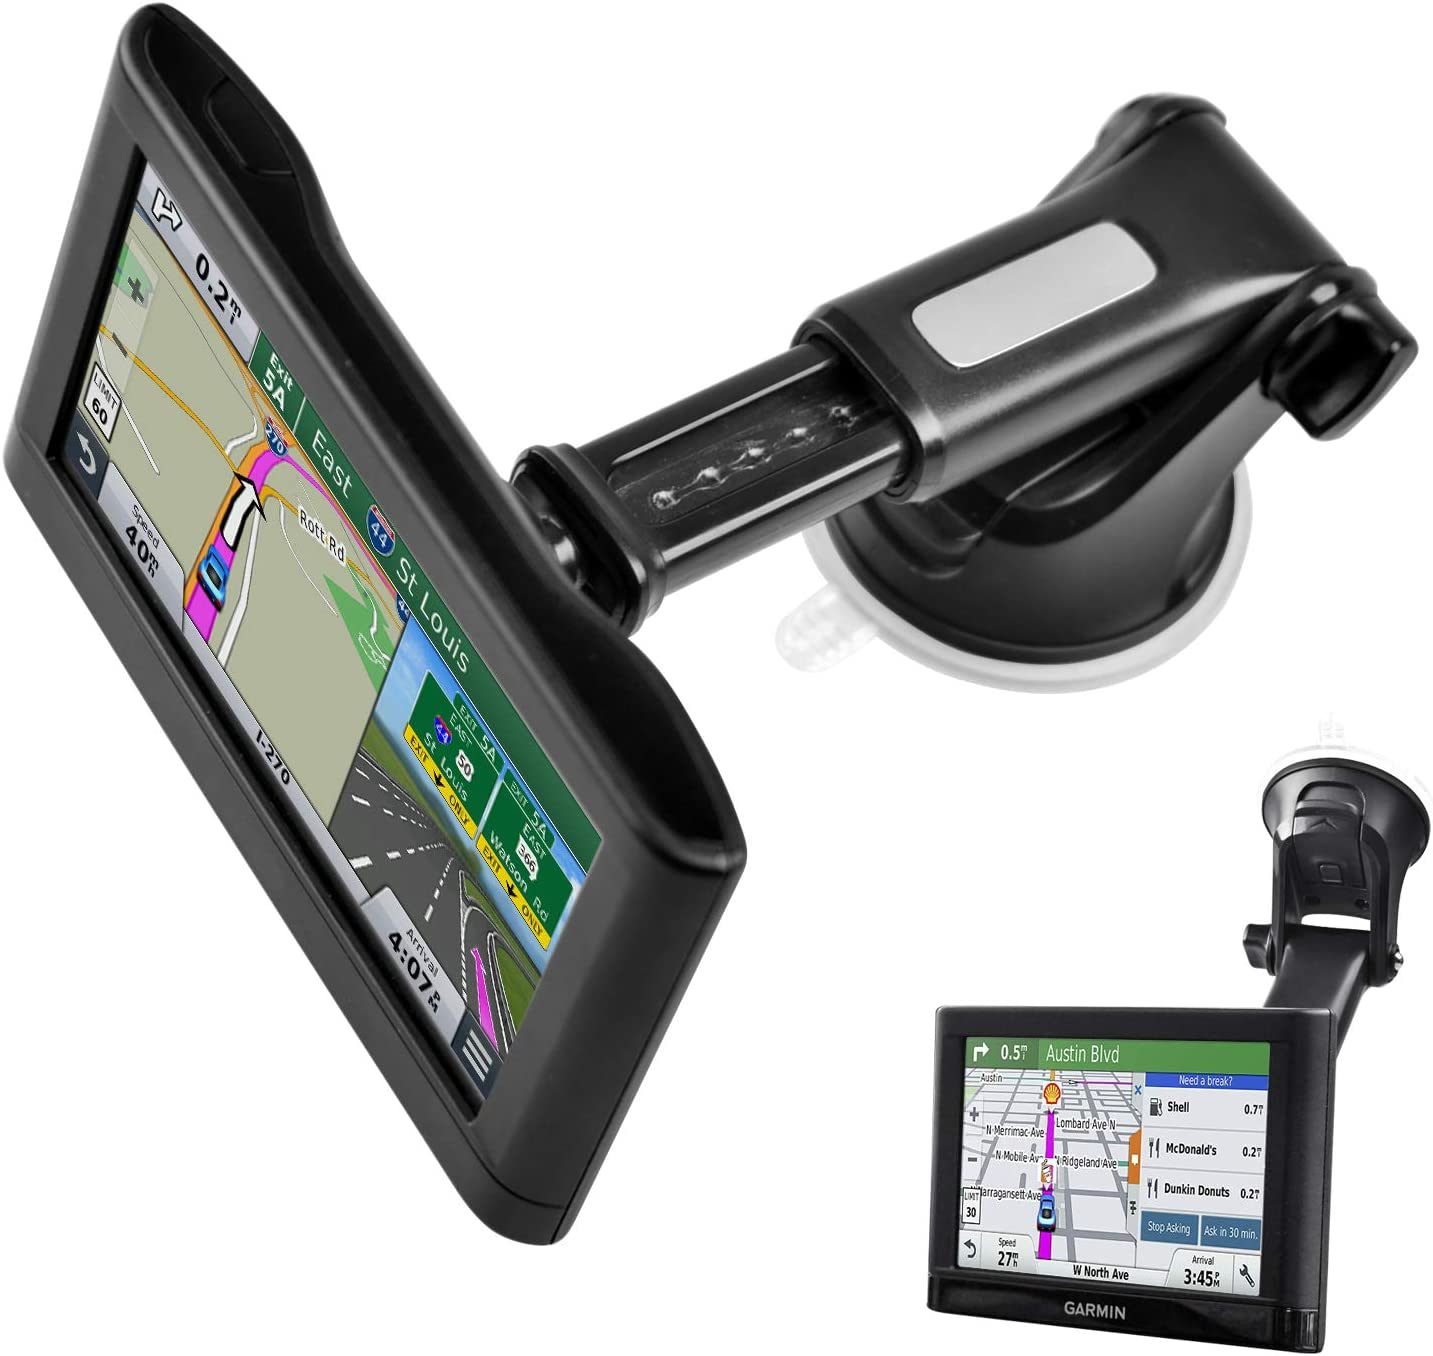 Ihome auto dash mount what is fleece made of?